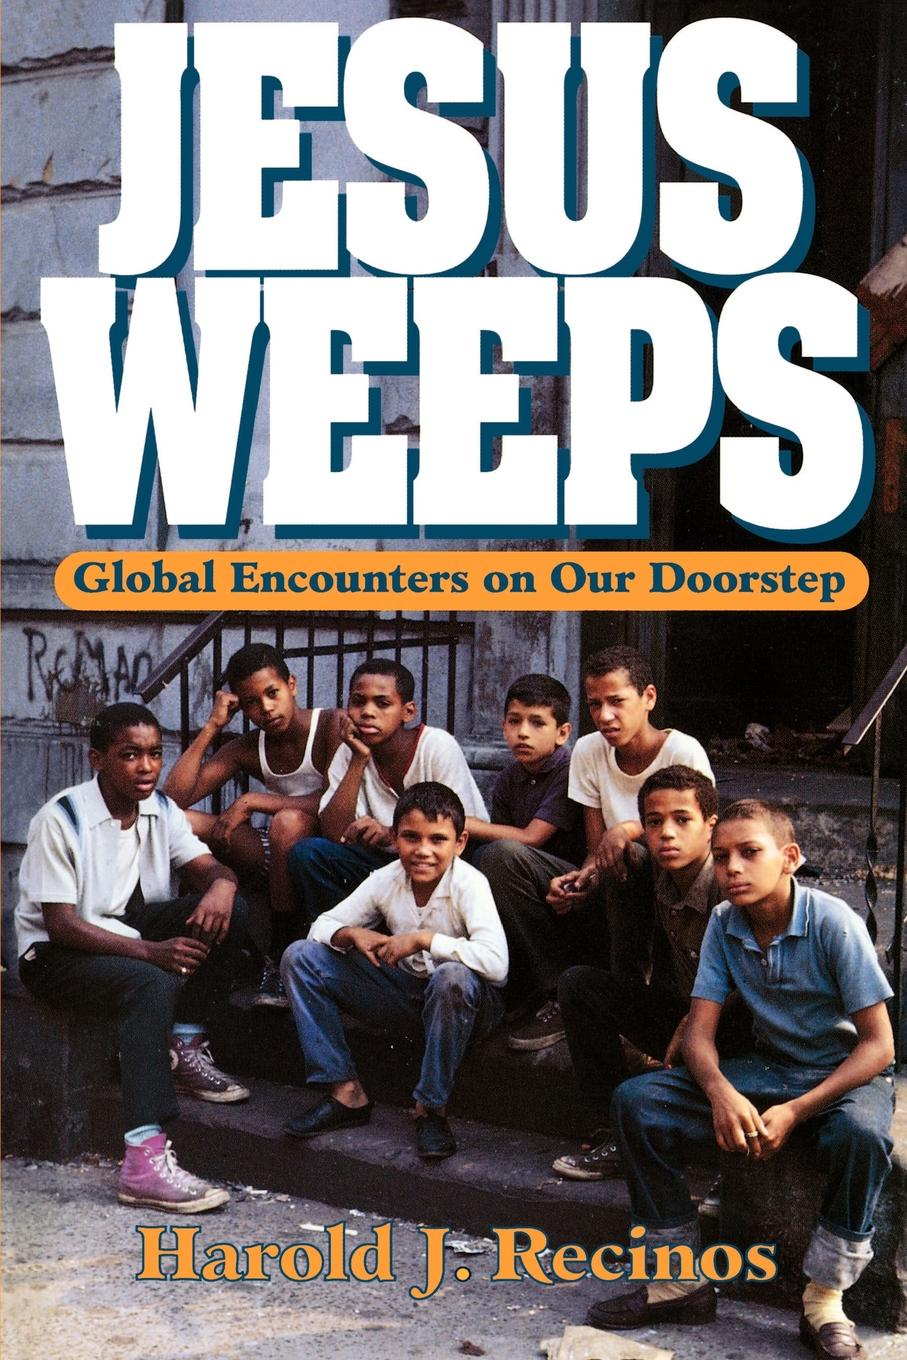 Harold J. Recinos Jesus Weeps. Global Encounters on Our Doorstep c bayly a remaking the modern world 1900 2015 global connections and comparisons